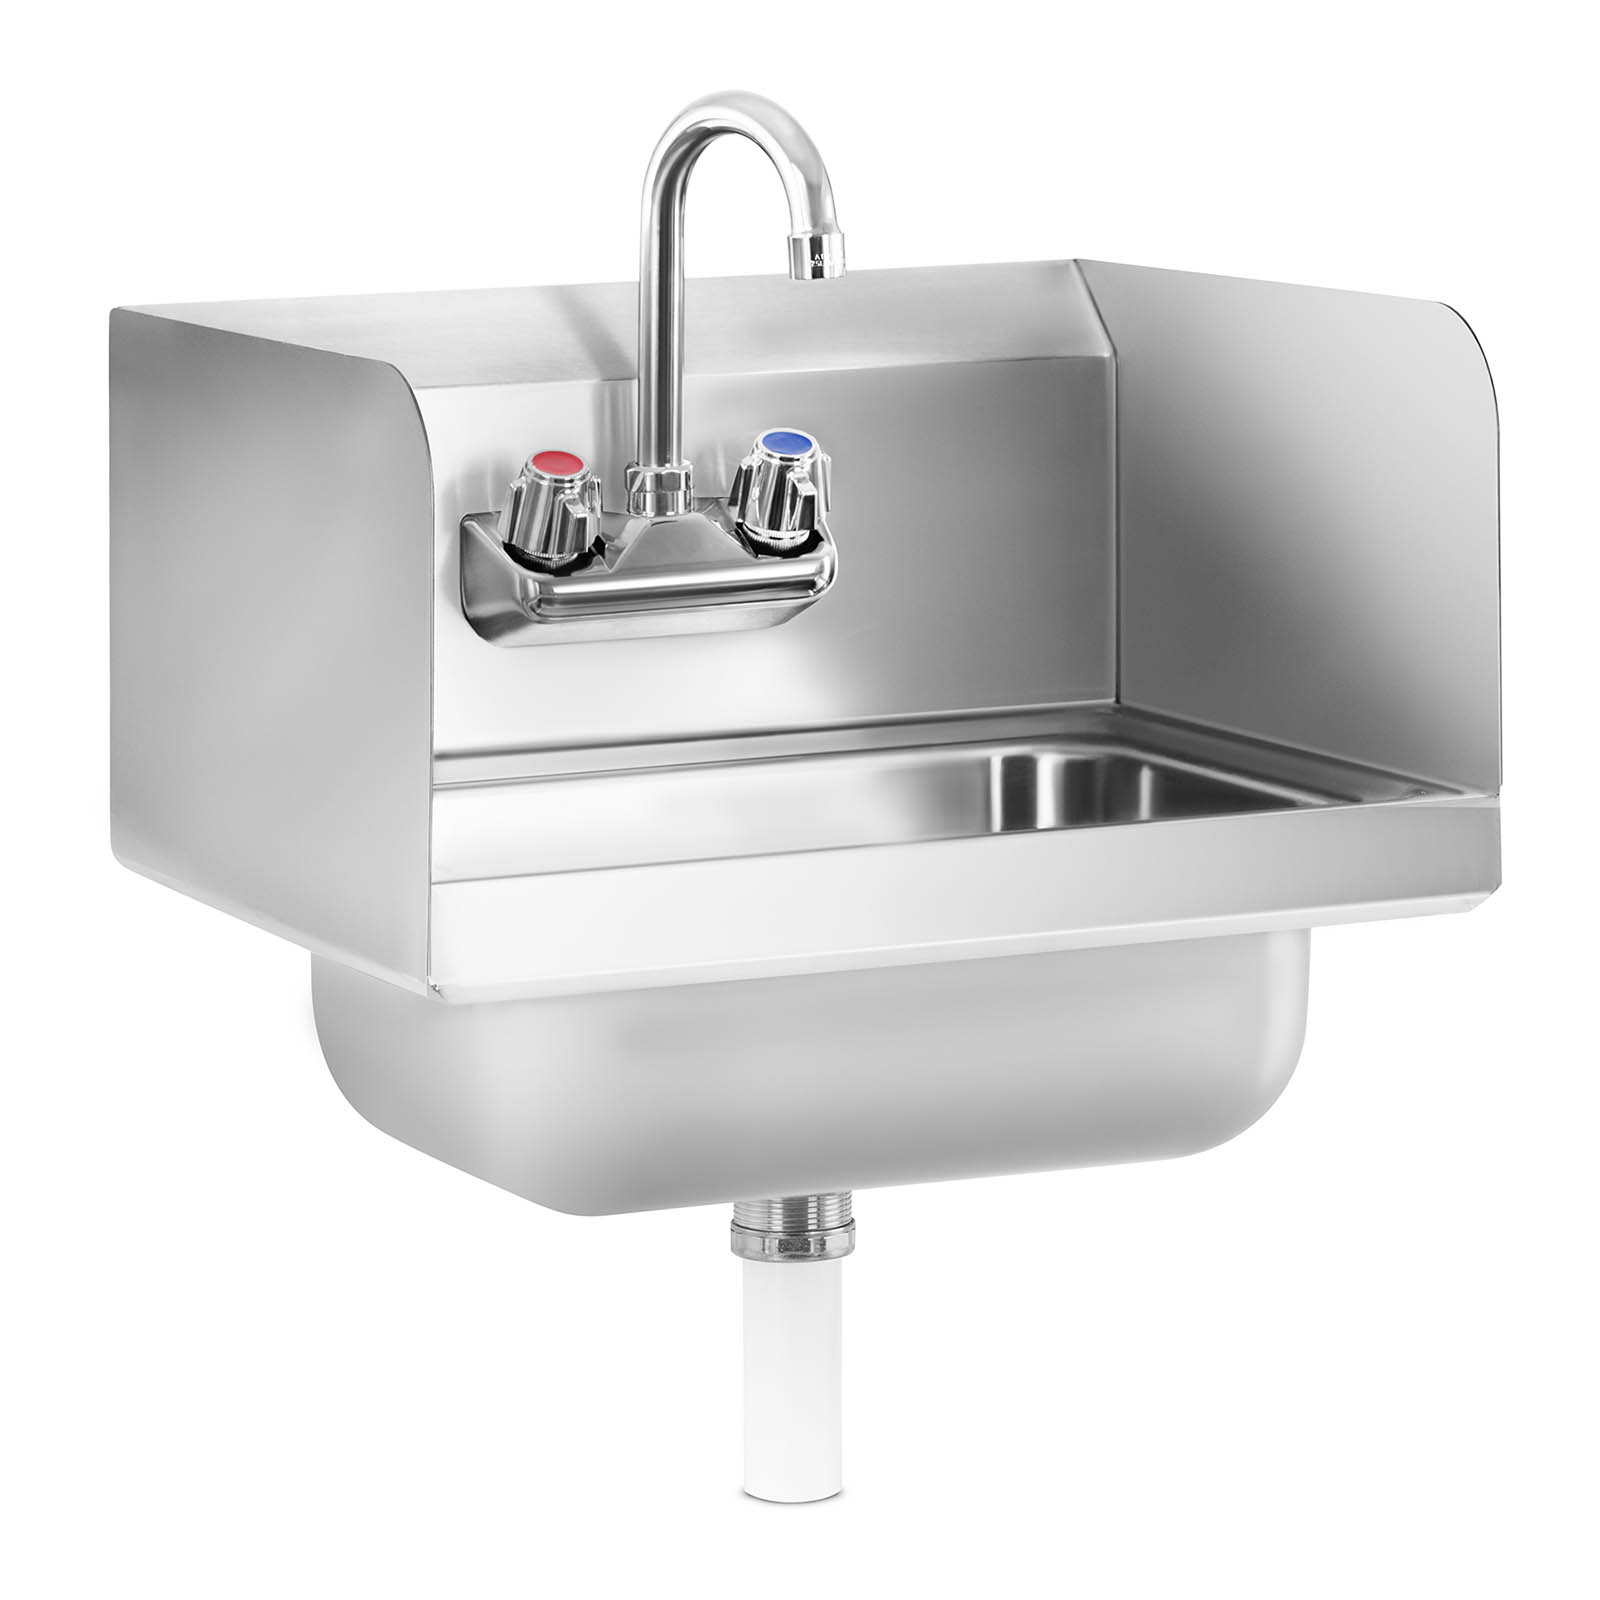 Gastro Commercial Hand Wash Basin Stainless Steel Basin 3